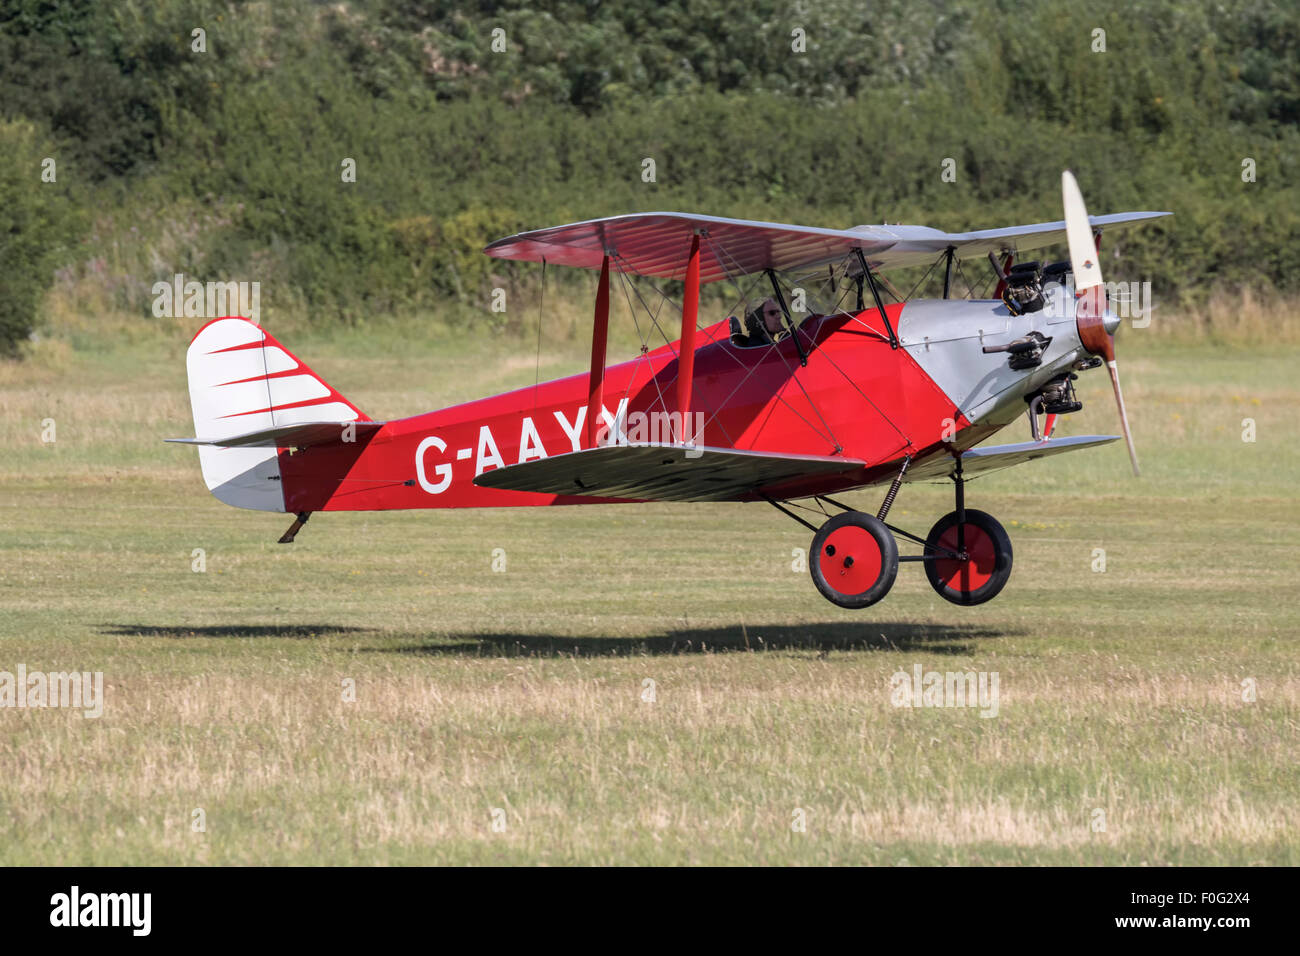 A 1930 Southern Martlett - Stock Image